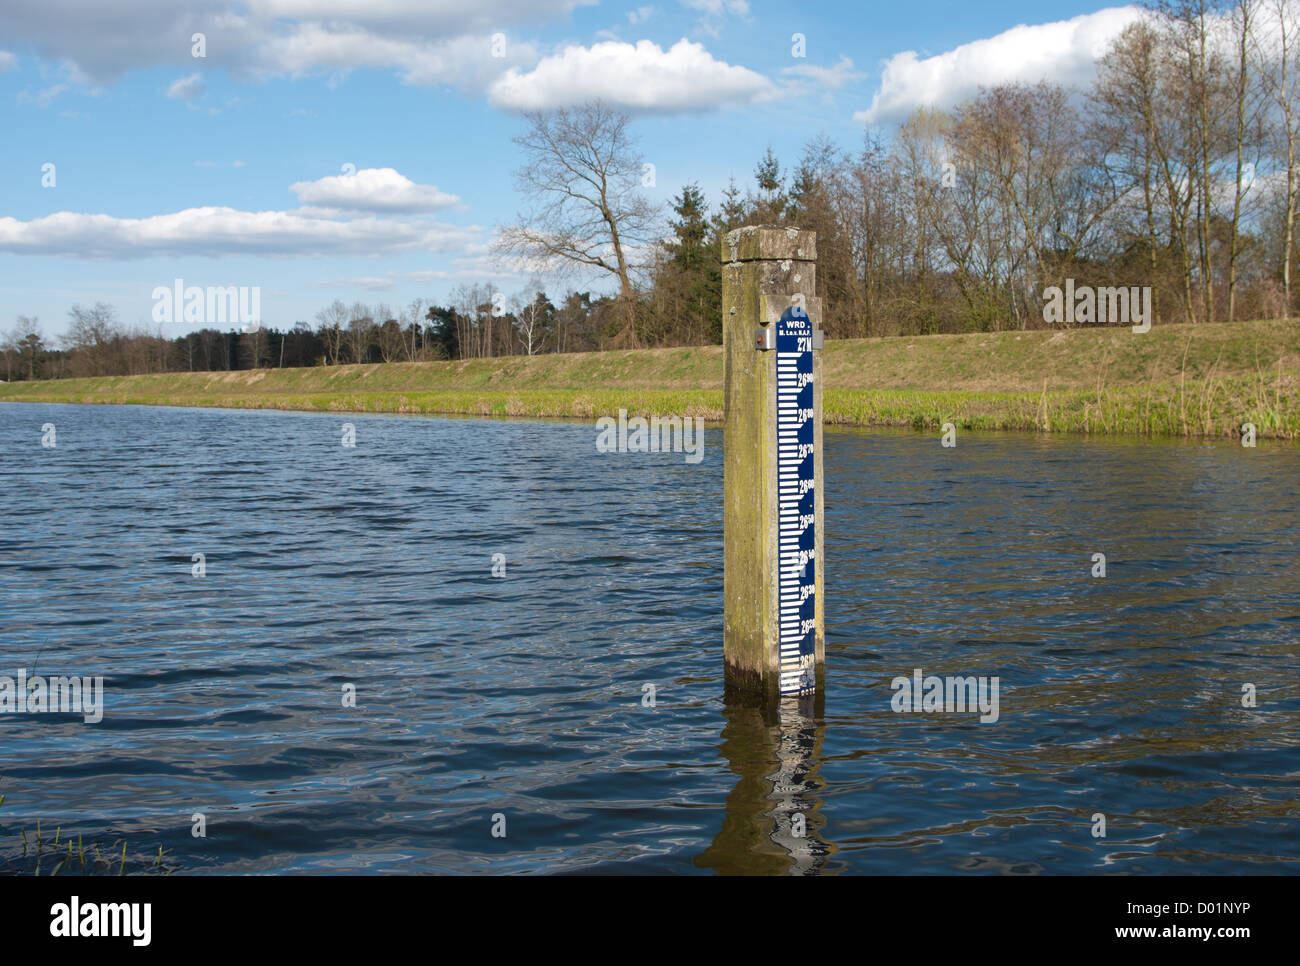 ruler indicating the height of the water above sea level (NAP) in the netherlands Stock Photo